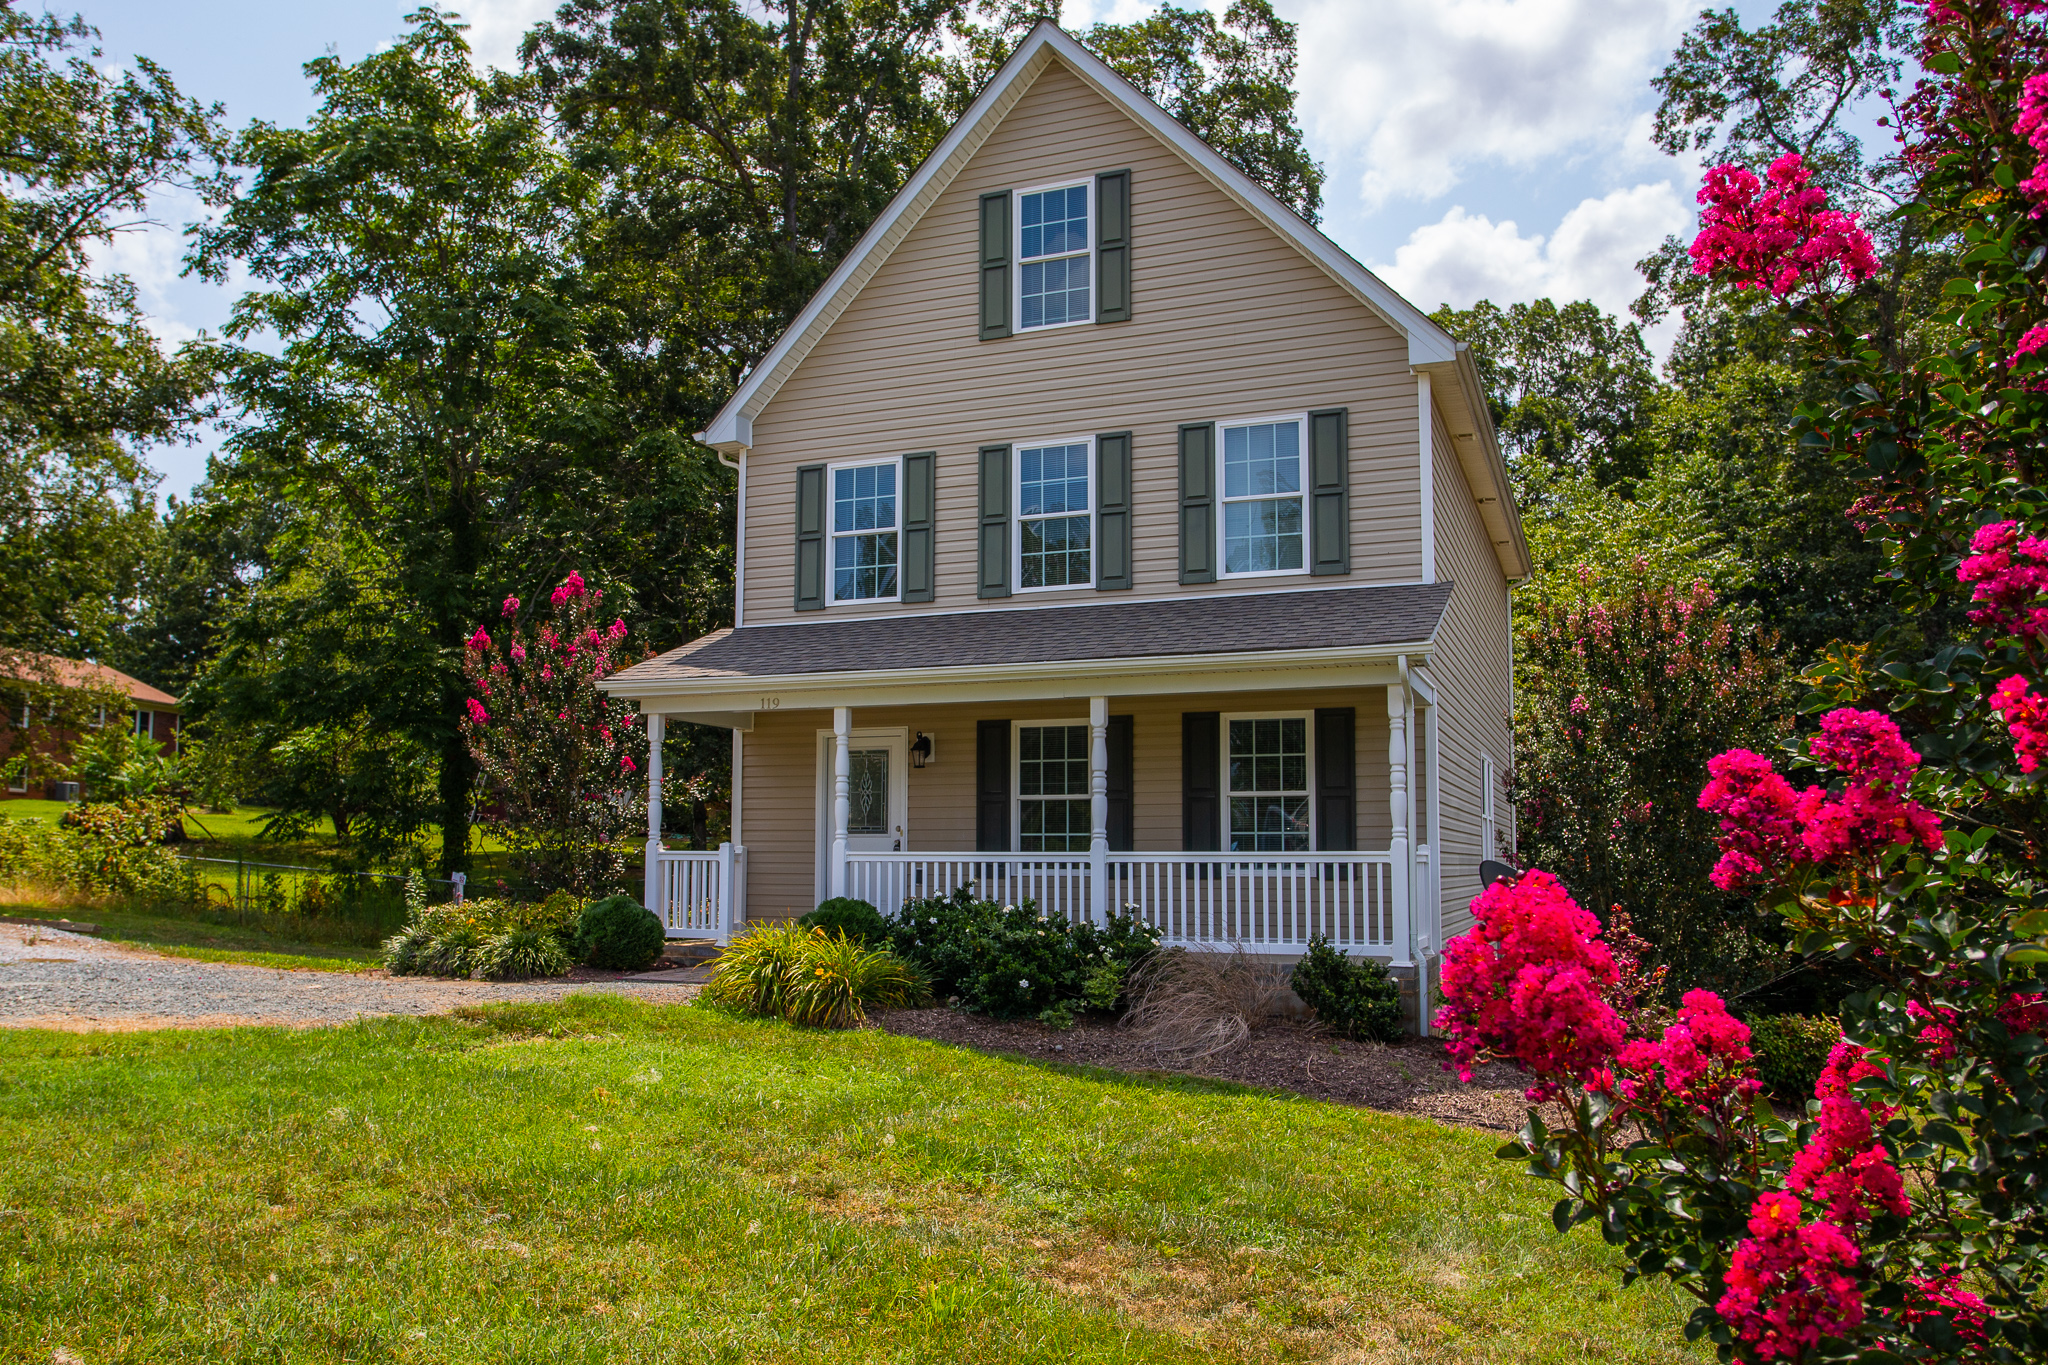 Home for Sale in Madison Heights! 119 Stratford Place